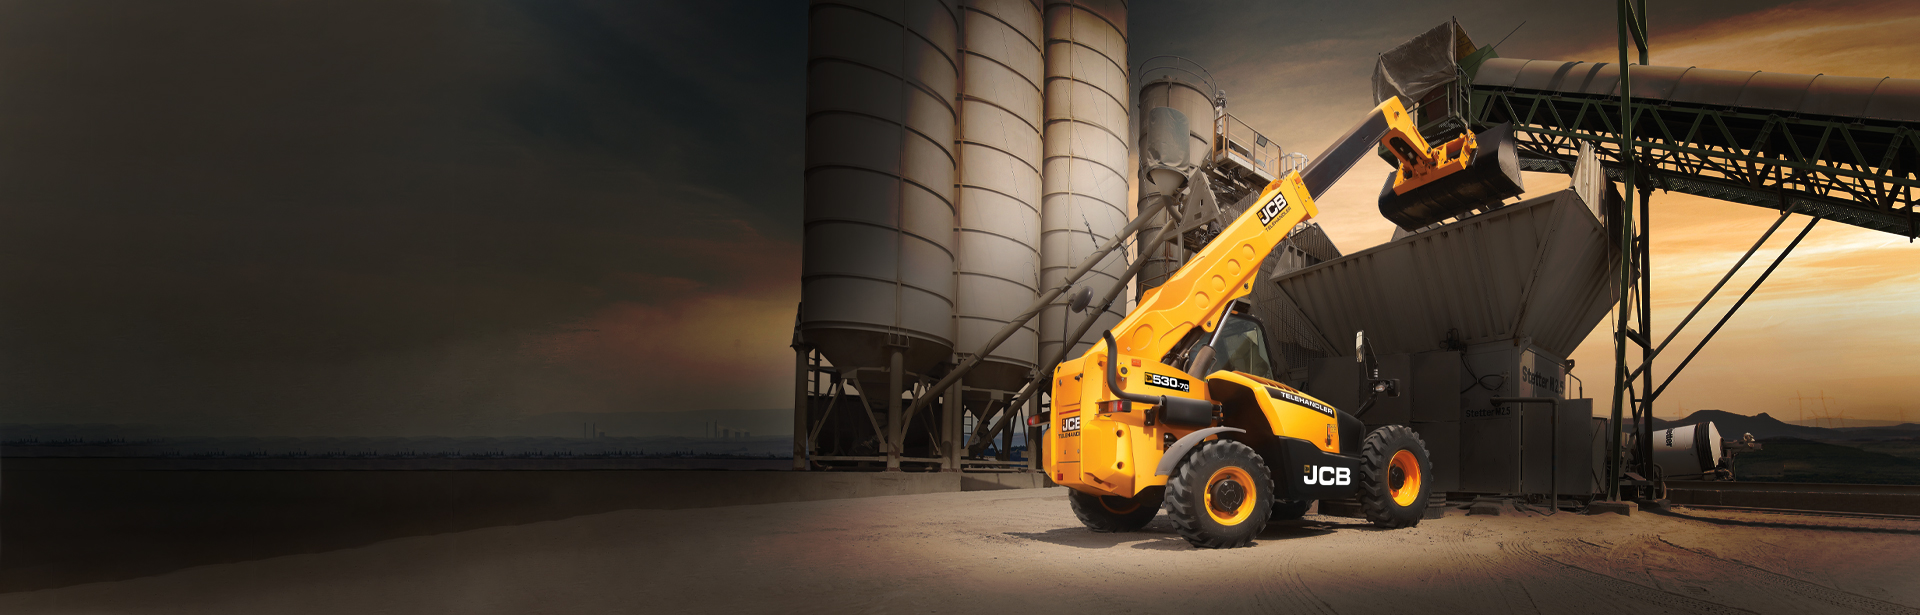 Introducing the new JCB Telehandler with side engine